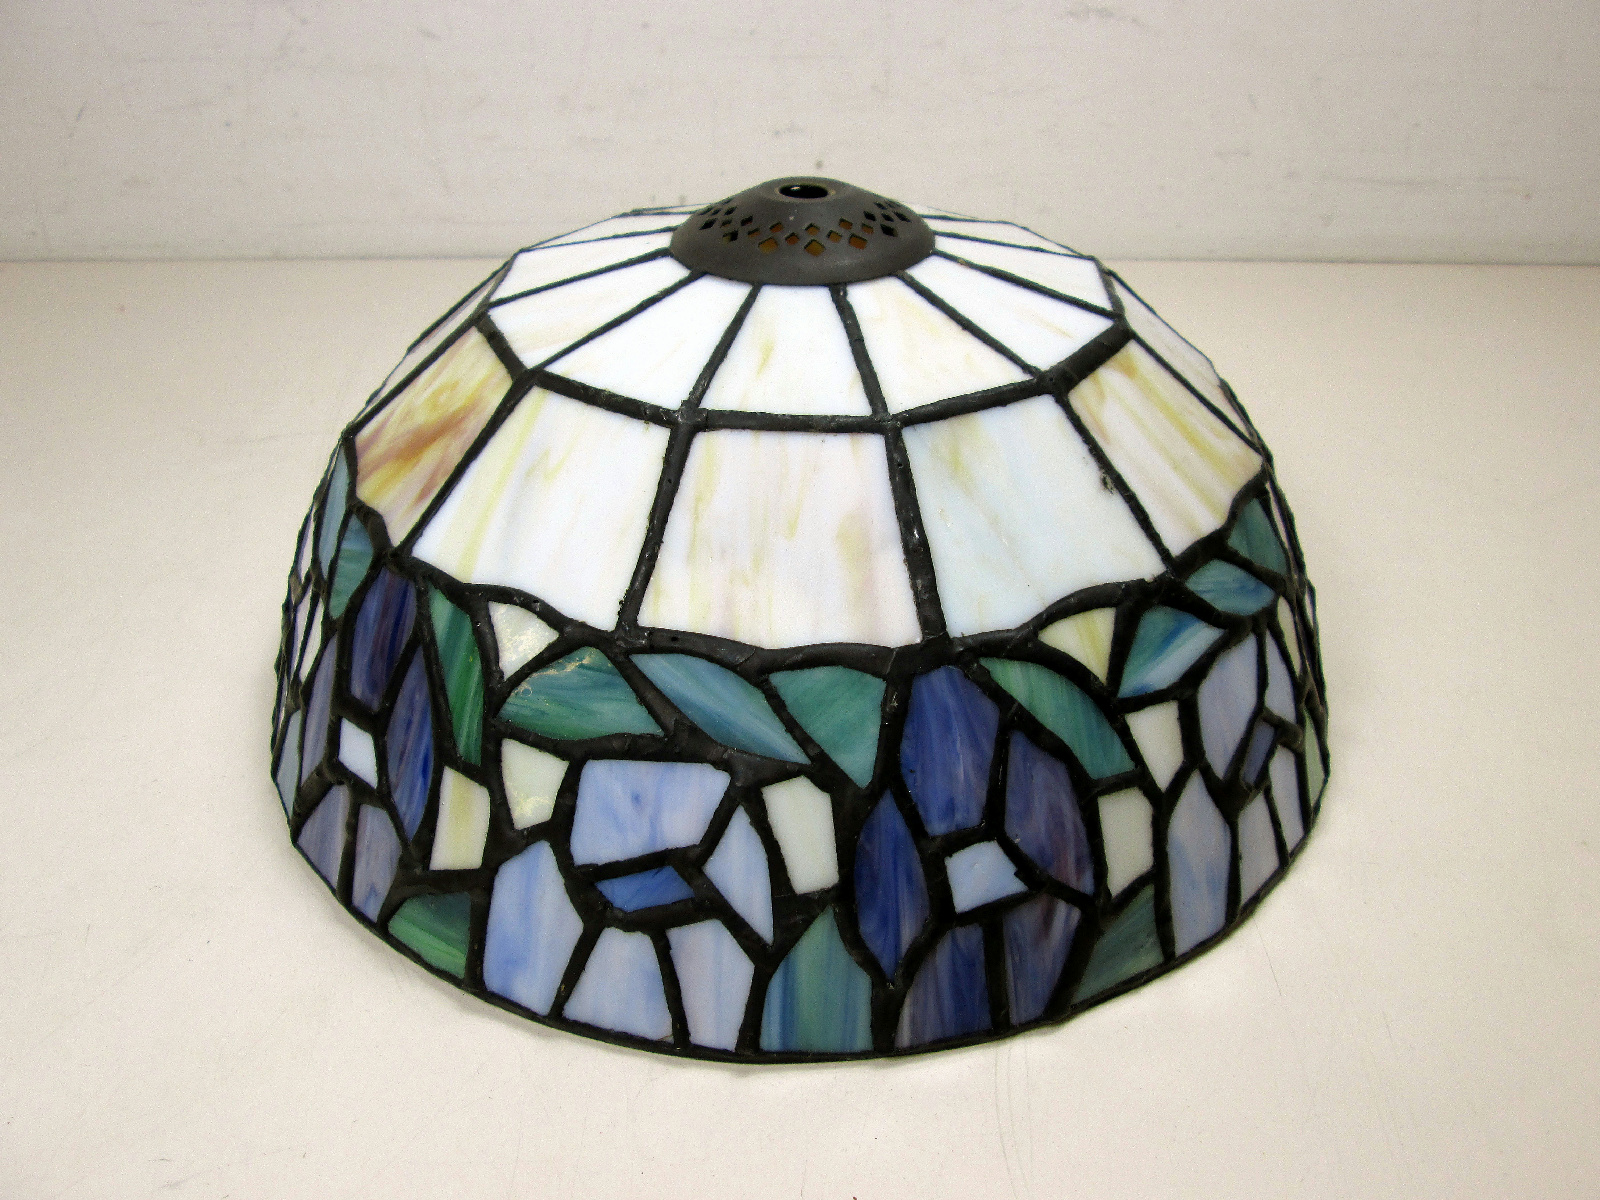 details about stained glass tiffany style floral lampshade lamp shade. Black Bedroom Furniture Sets. Home Design Ideas